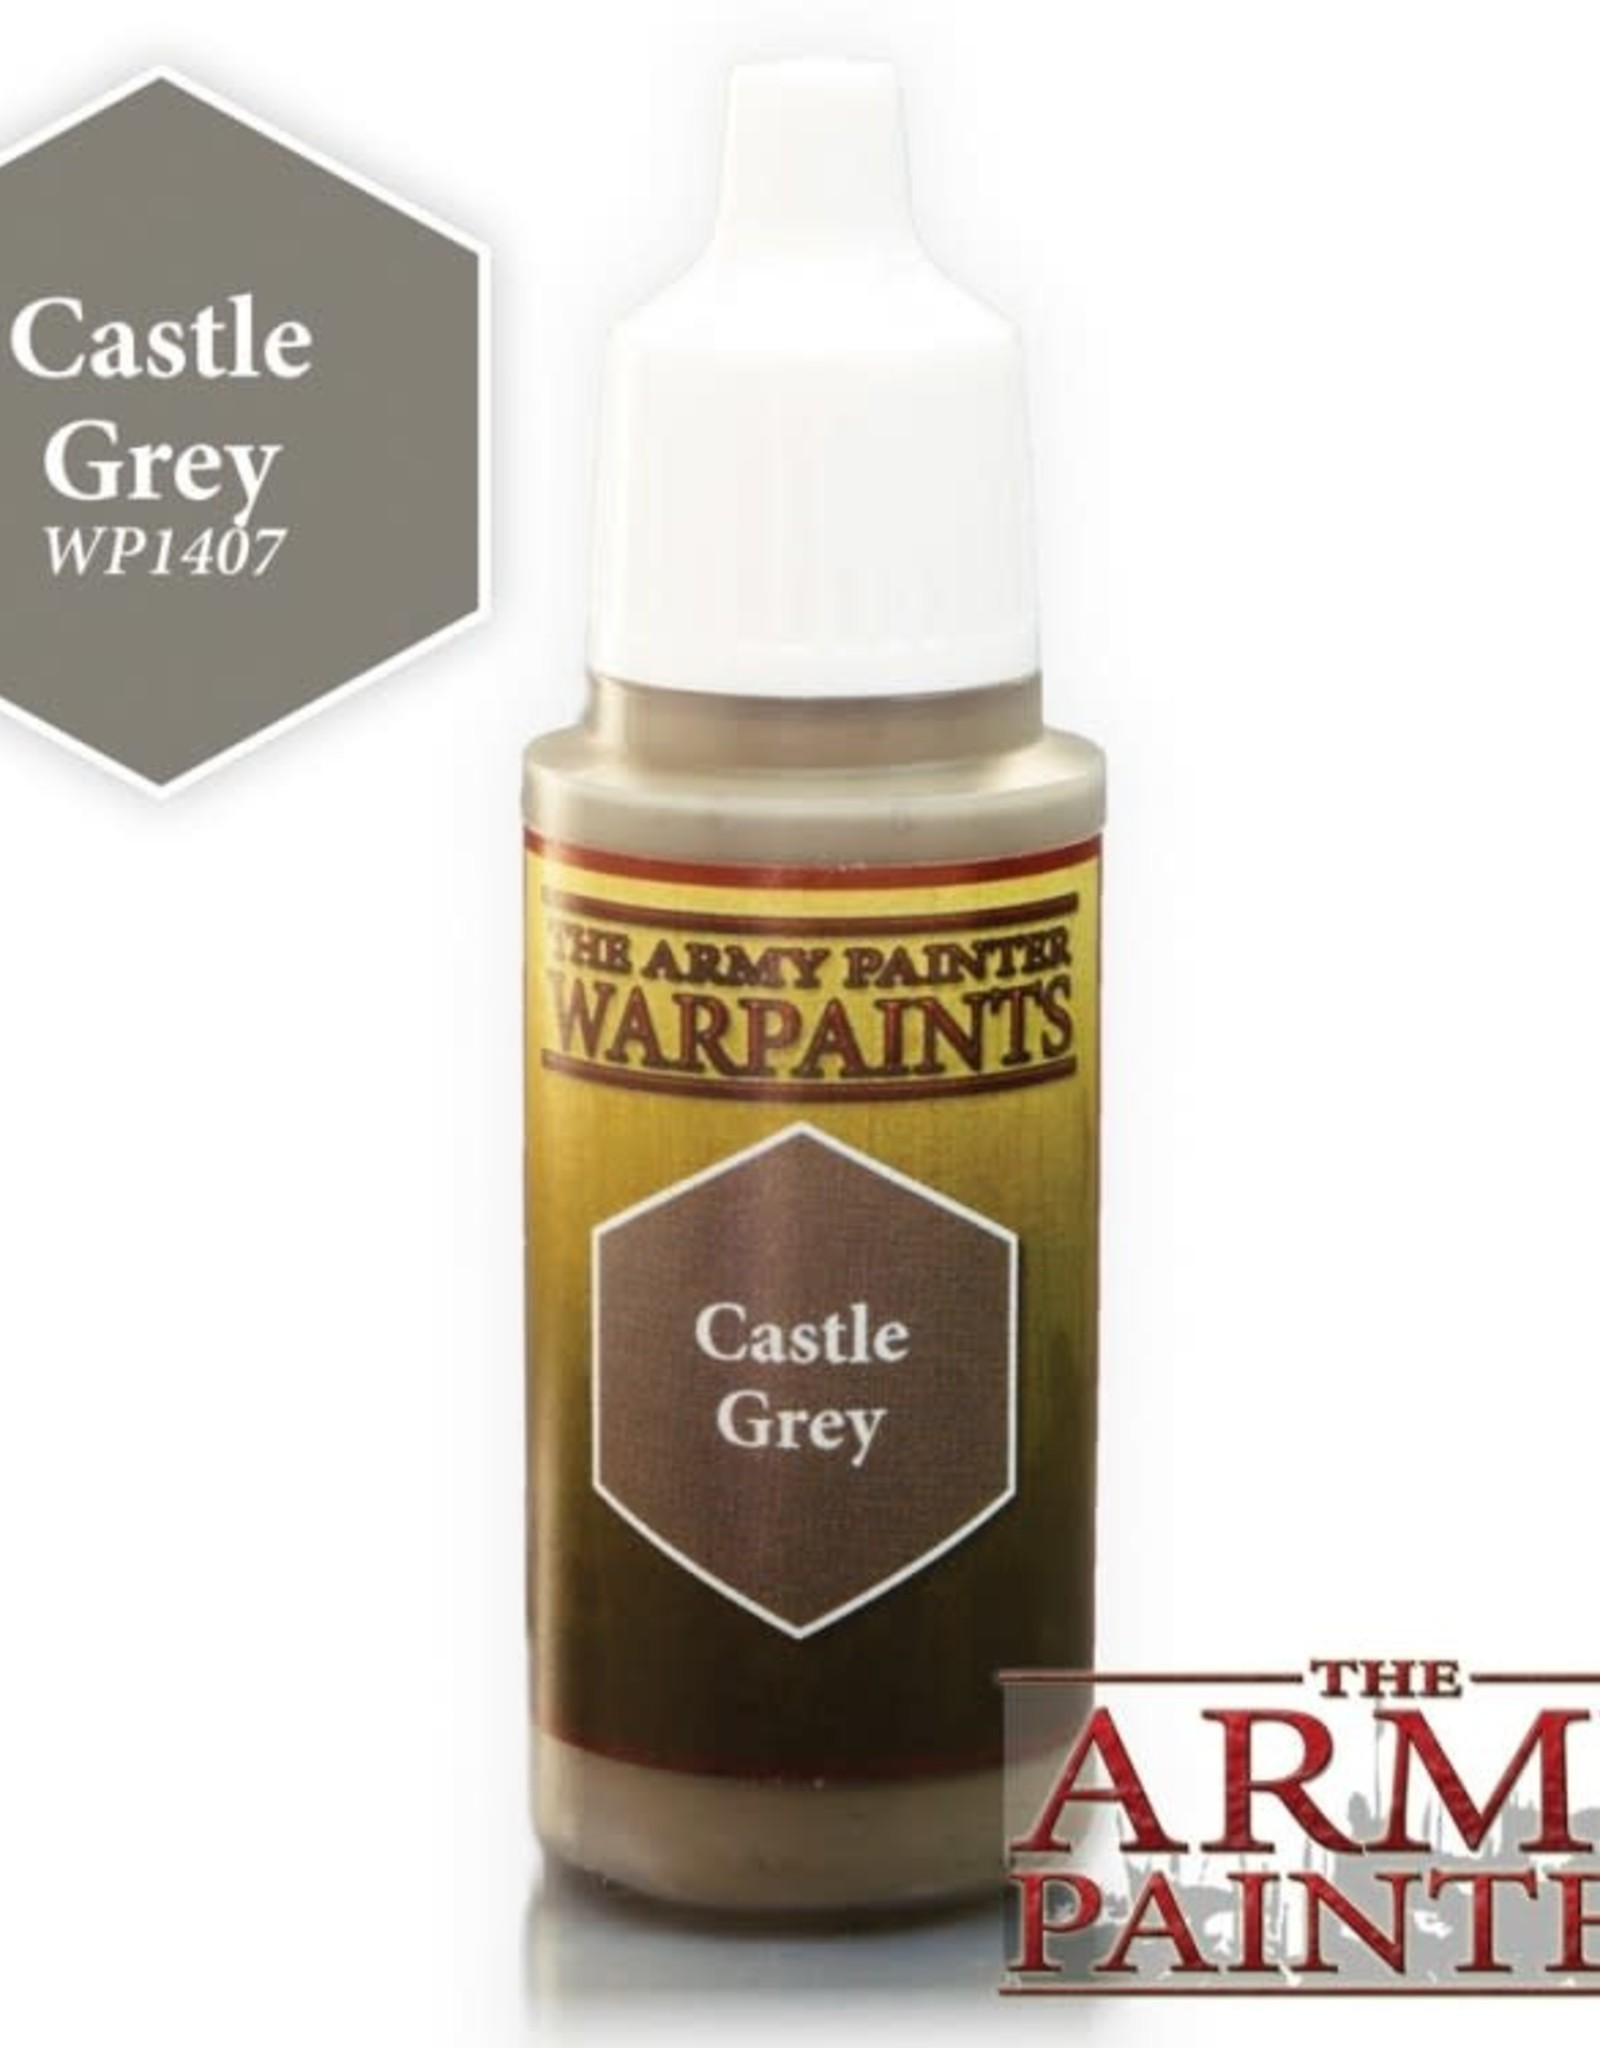 The Army Painter Warpaints - Castle Grey